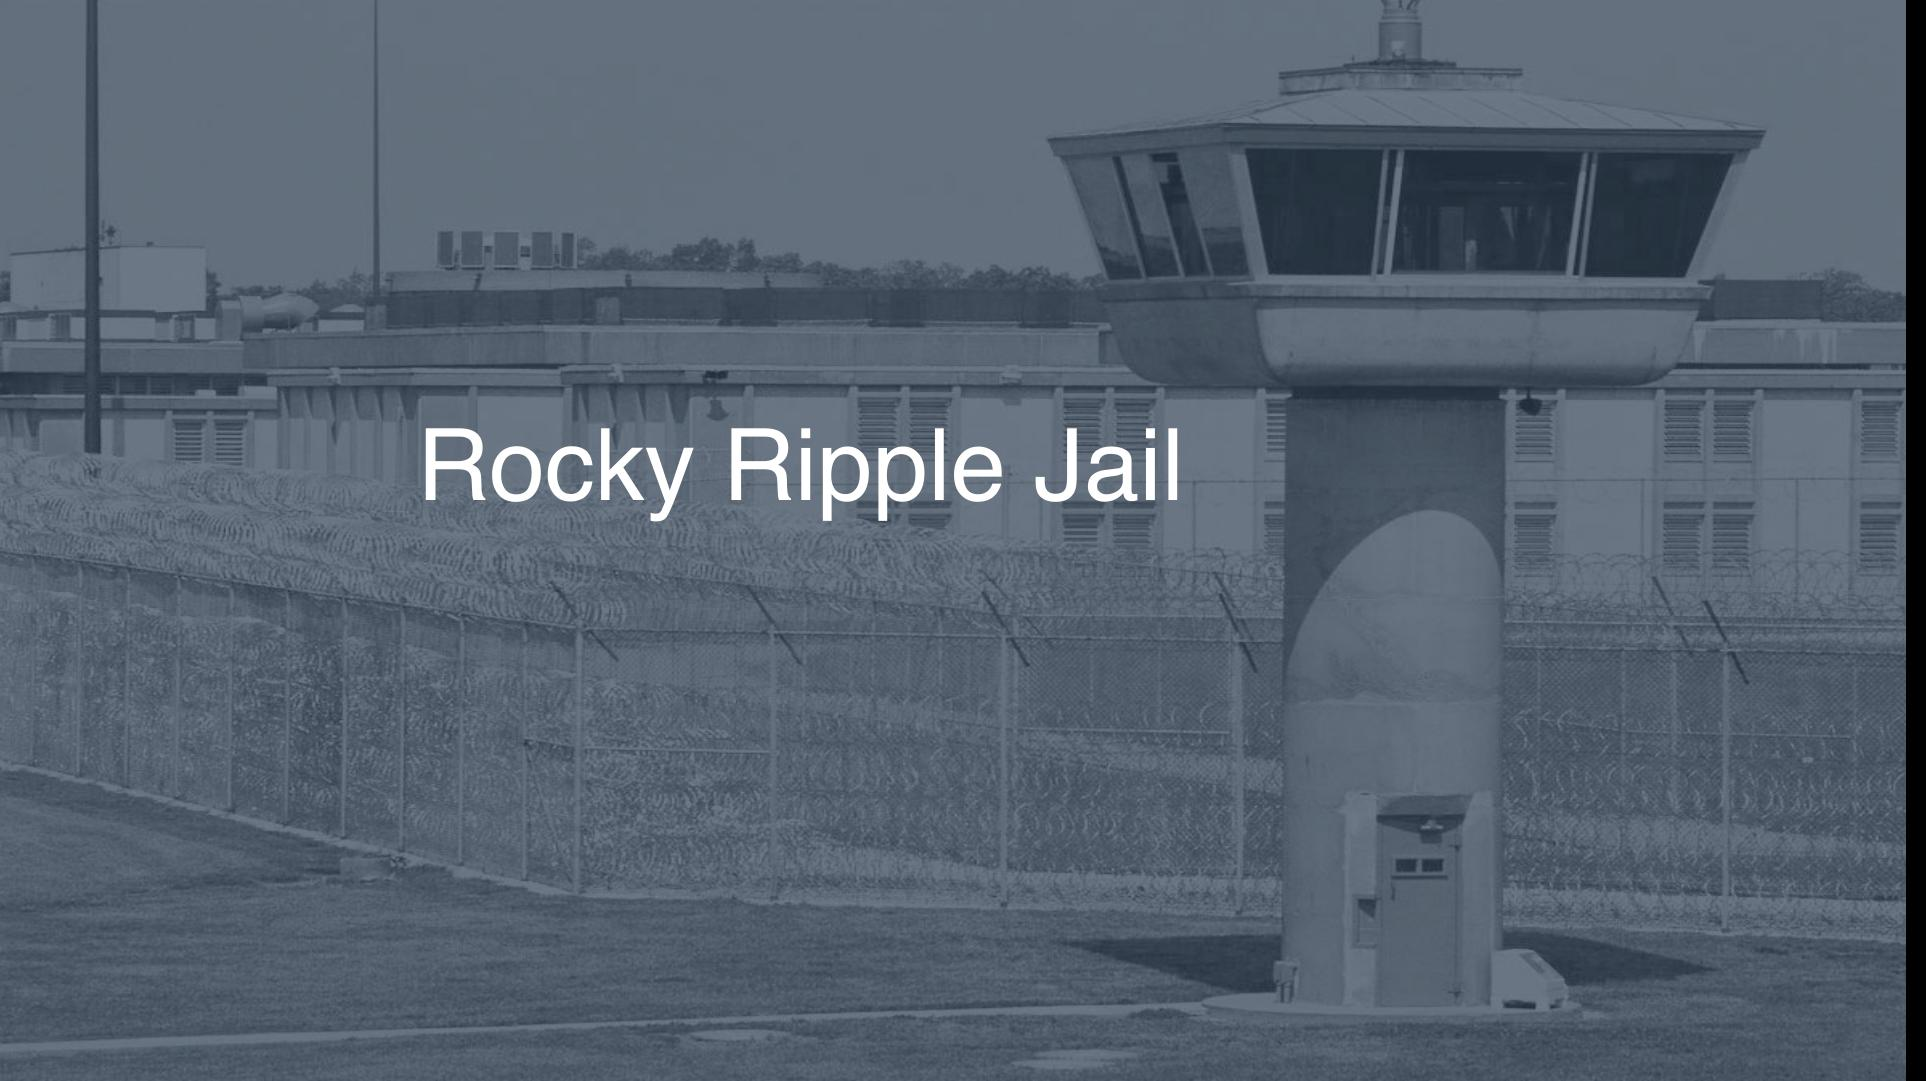 Rocky Ripple Jail correctional facility picture